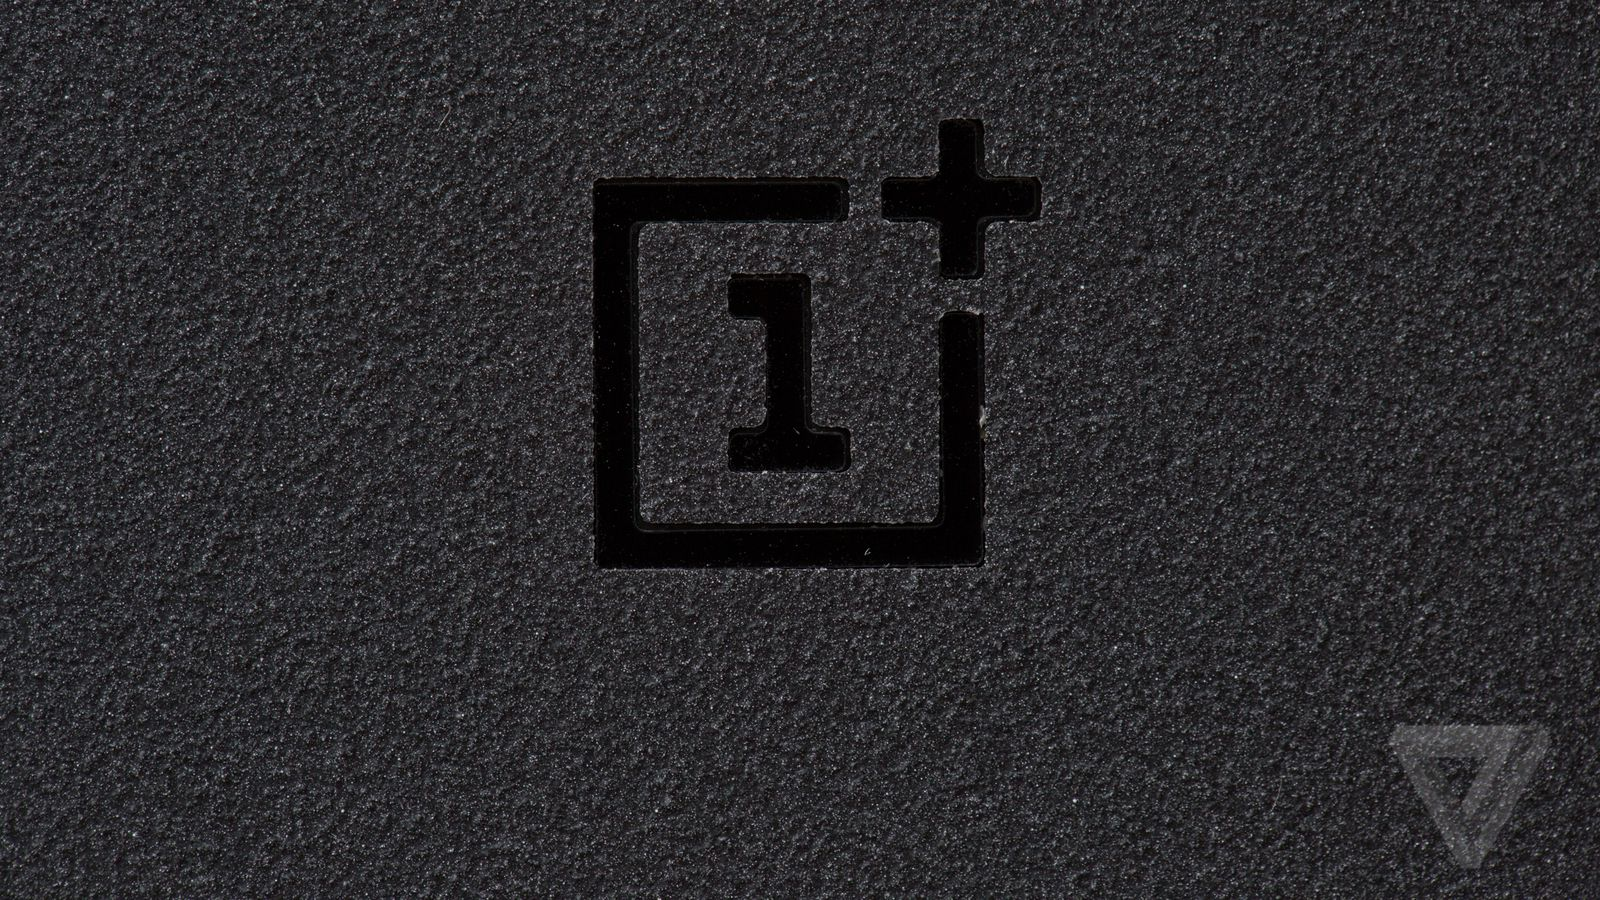 OnePlus teases new X smartphone launch for October 29th ...